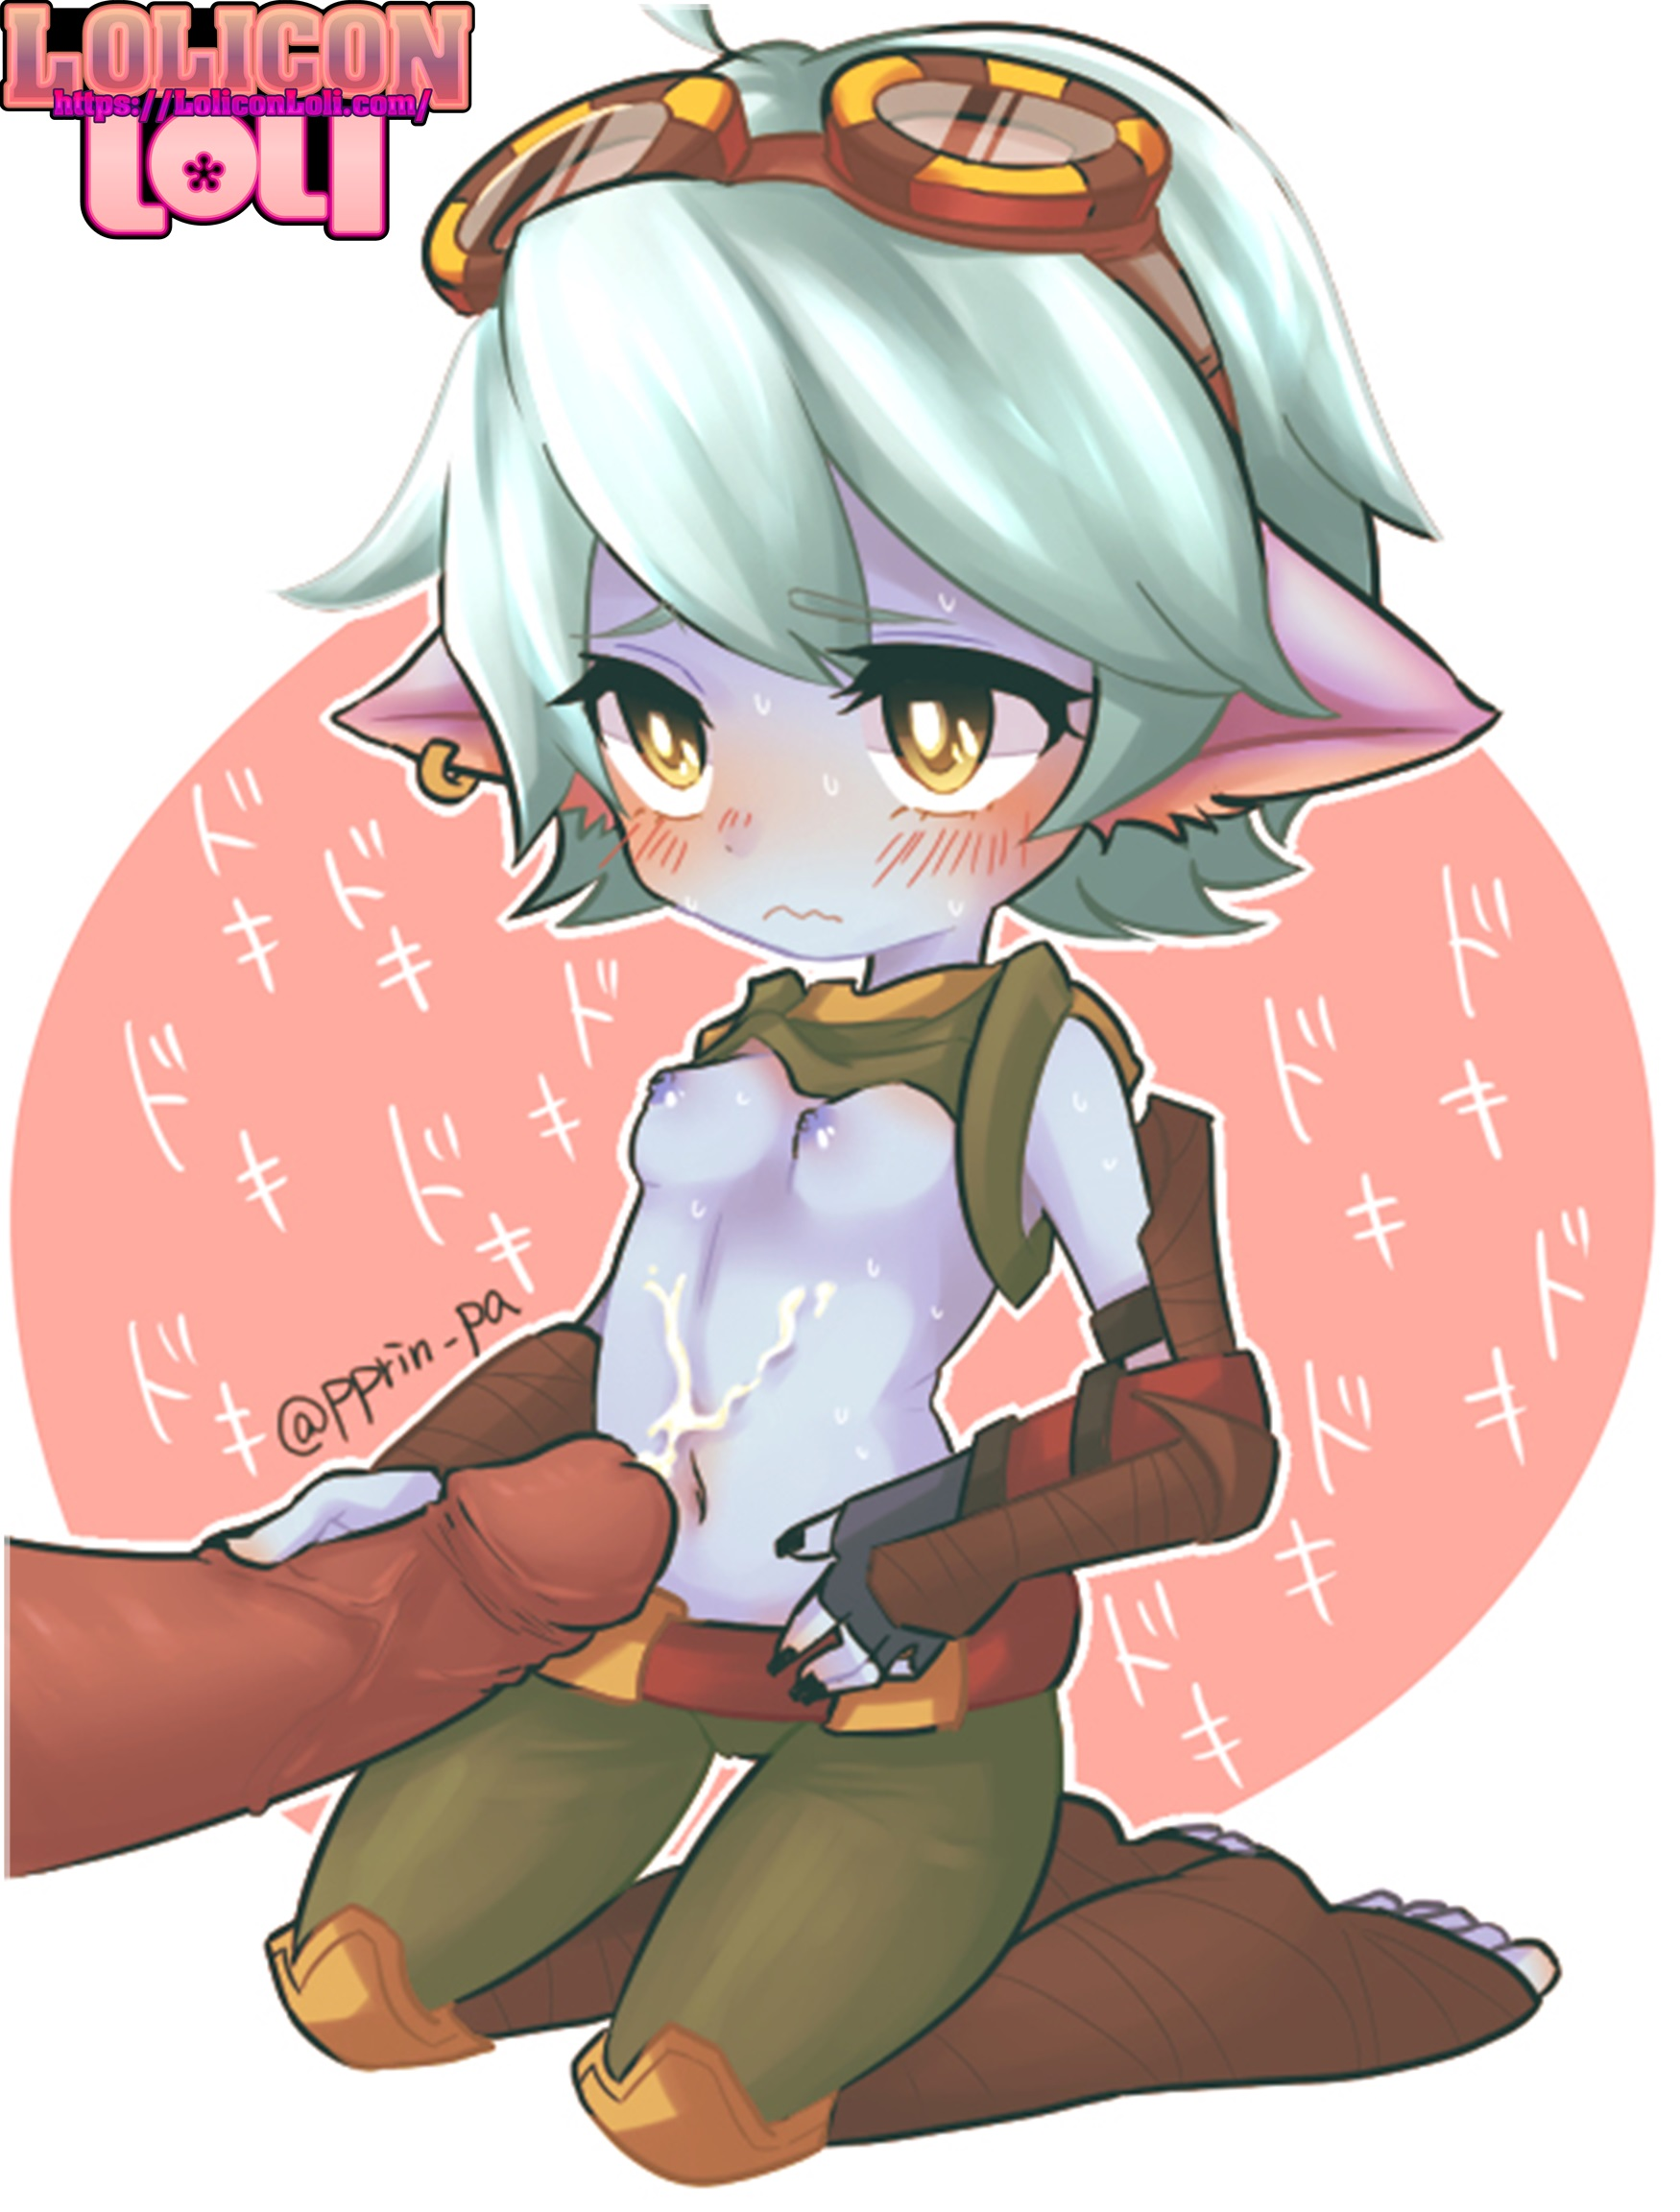 lolicon hentai leagueoflegends gaming tristana